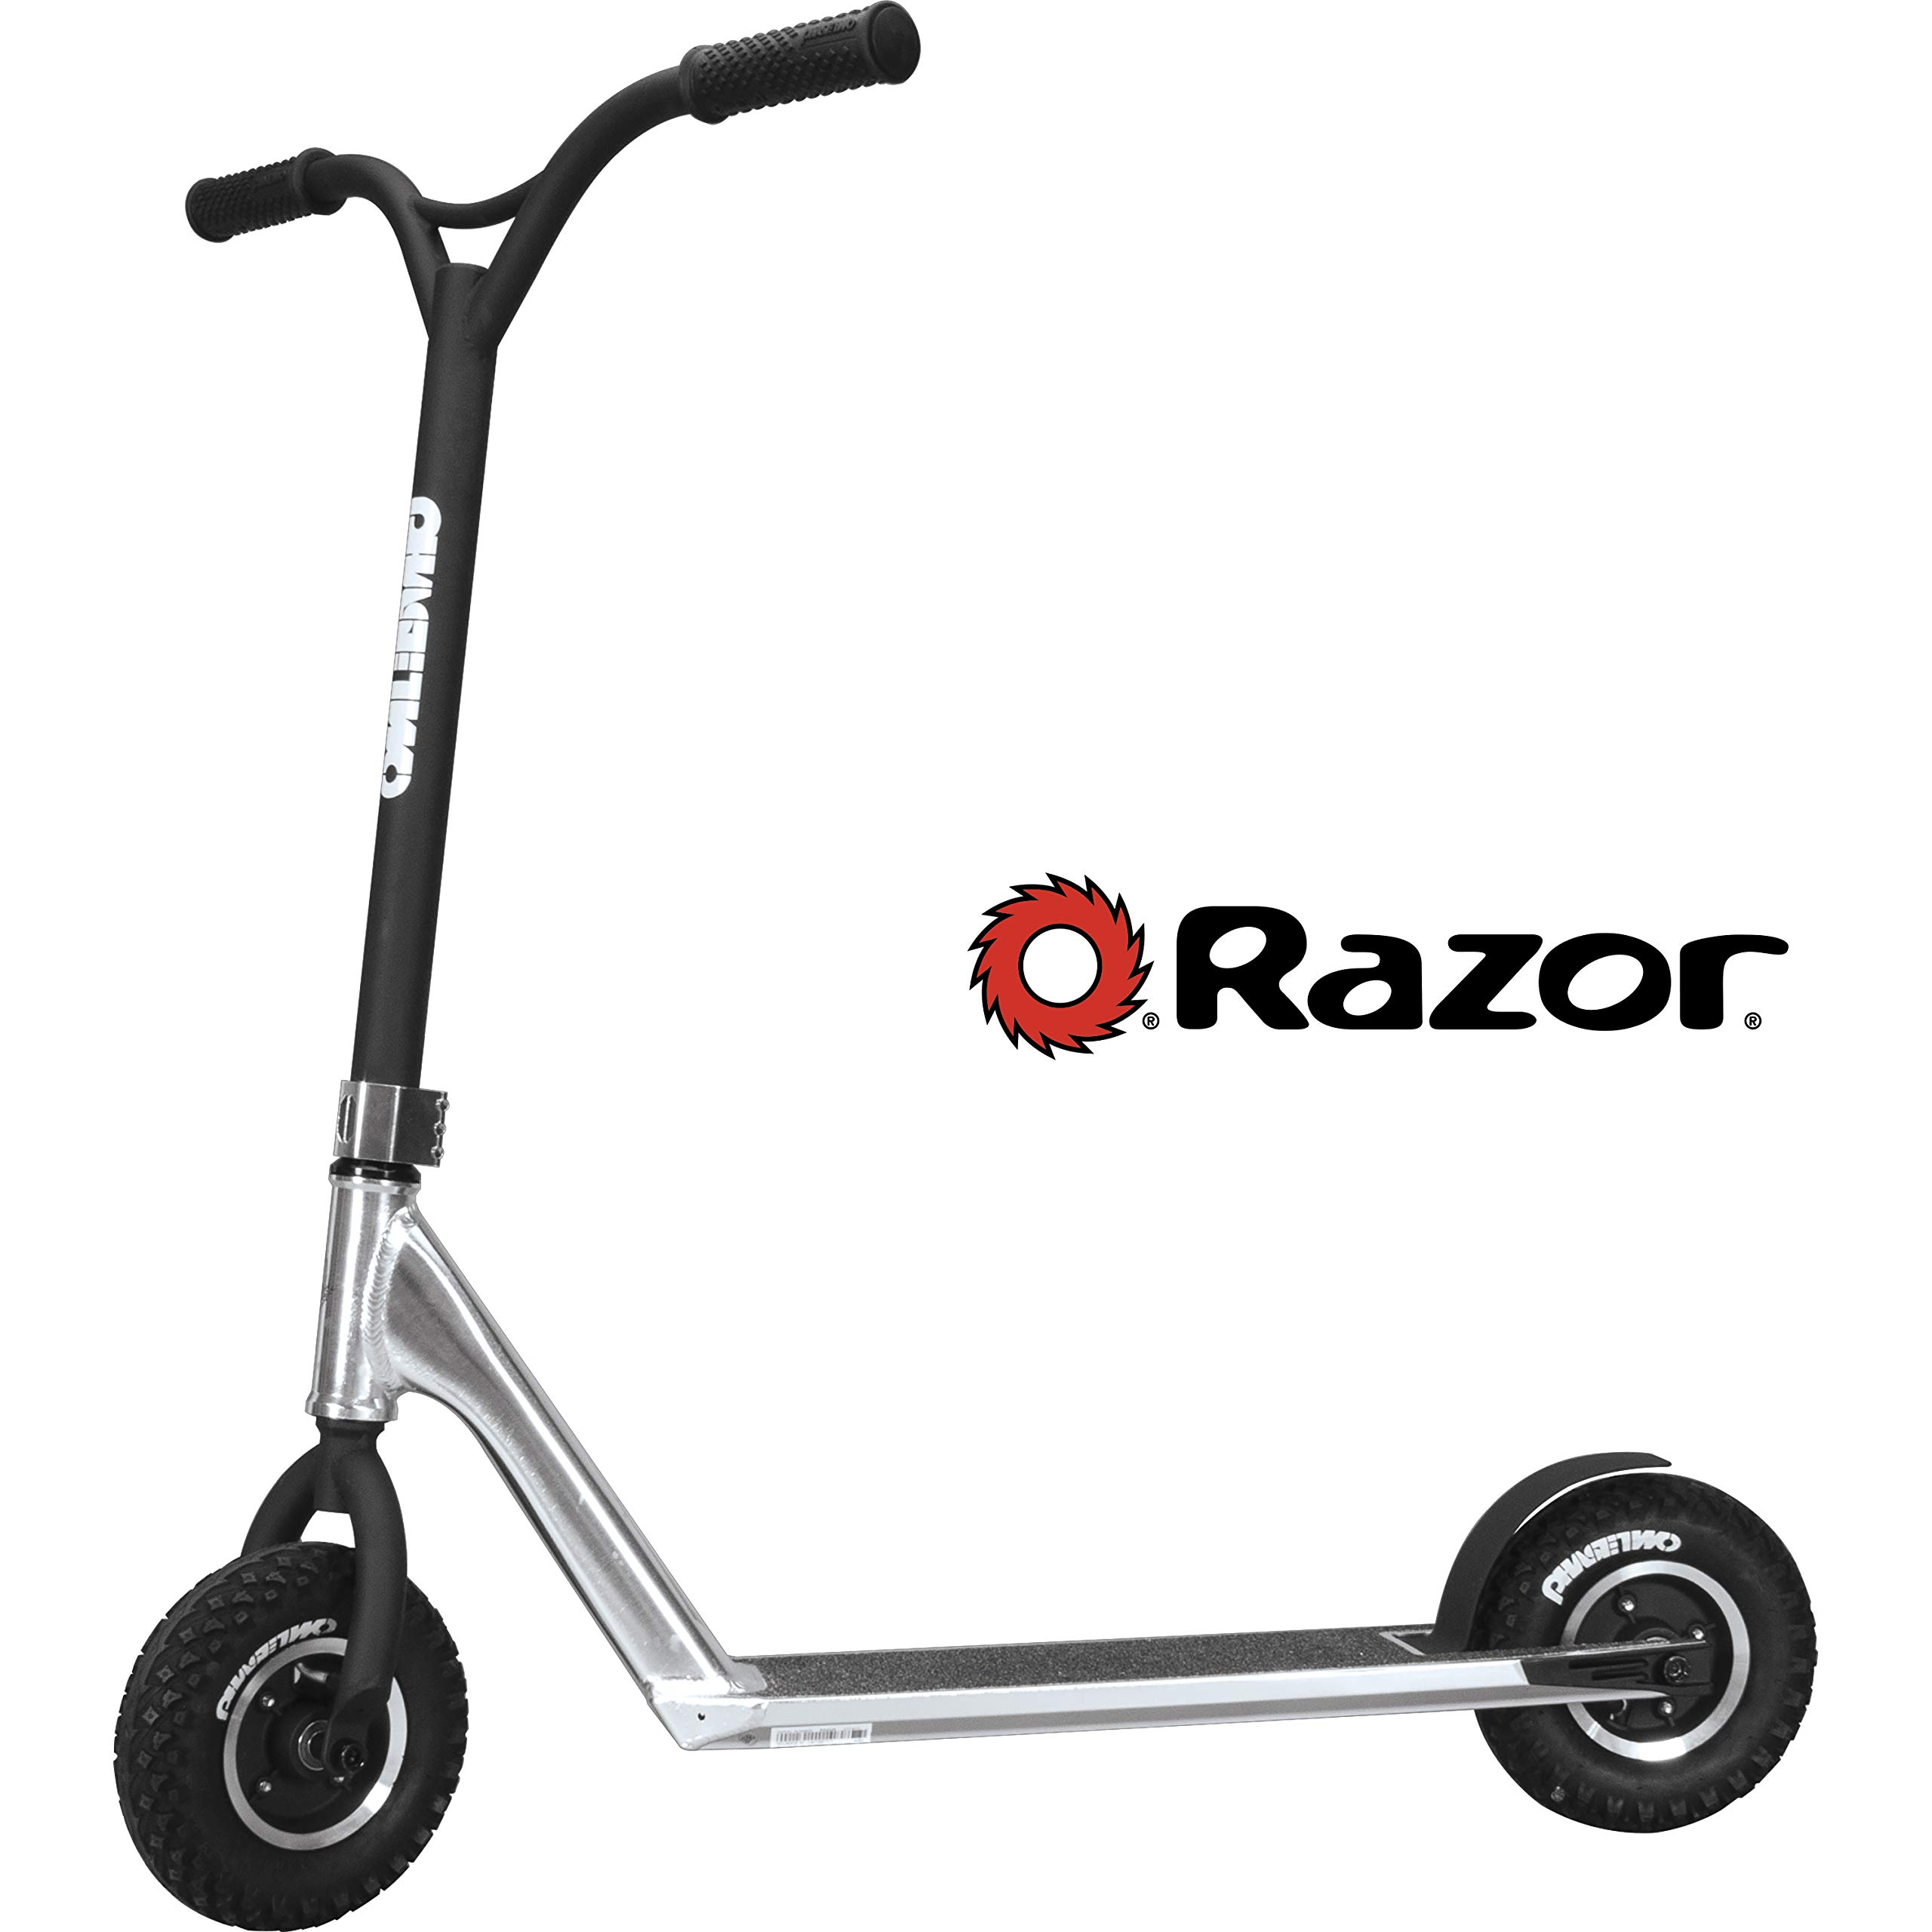 Razor Phase Two Dirt Scoot Diamond Edition Scooter - Silver by Razor